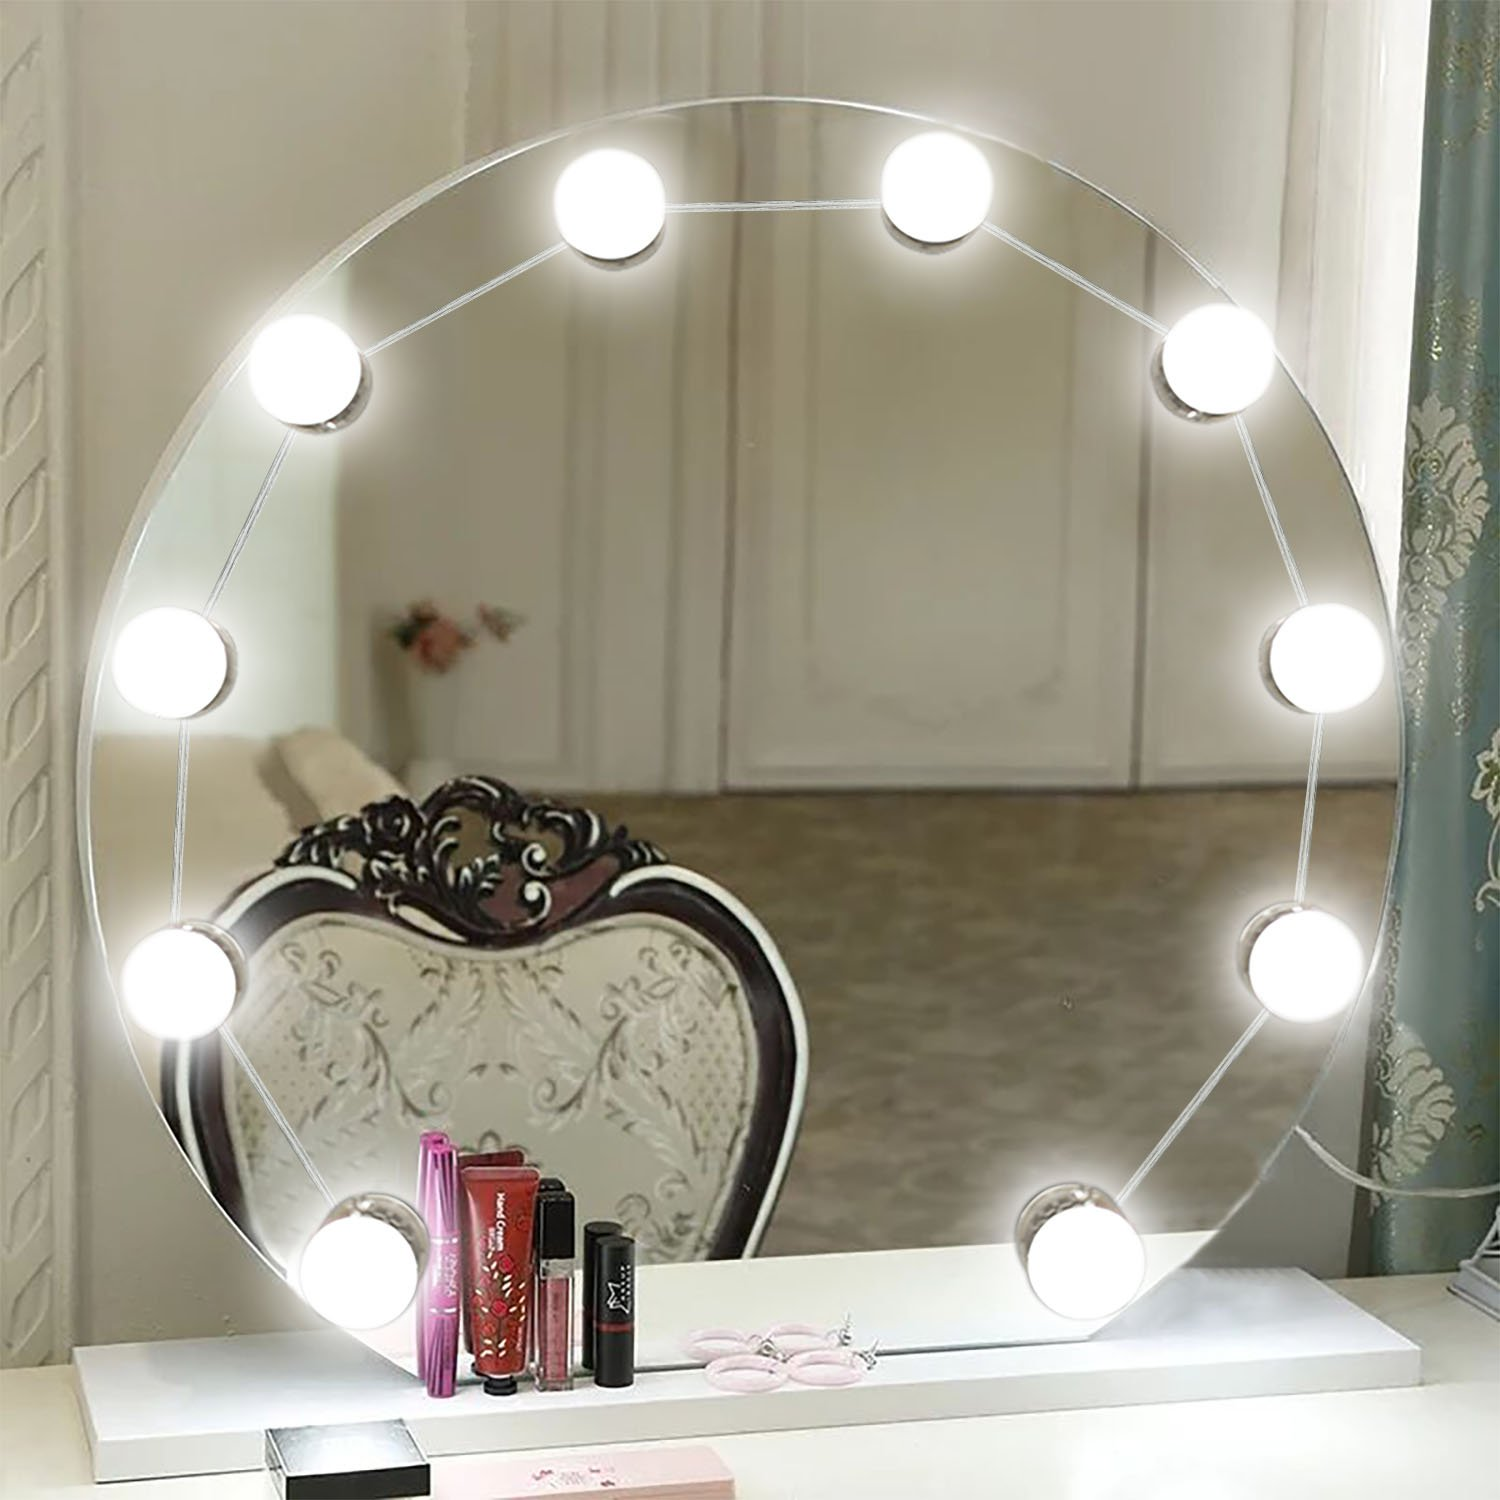 Vanity Mirror Lights, Comkes LED Makeup Vanity Light Kit with 10 Cosmetic Dressing Bulb Hollywood Style, USB Power Supply 7000K Dimmable Lighting Fixture Strip Vanity Set in Dressing Room